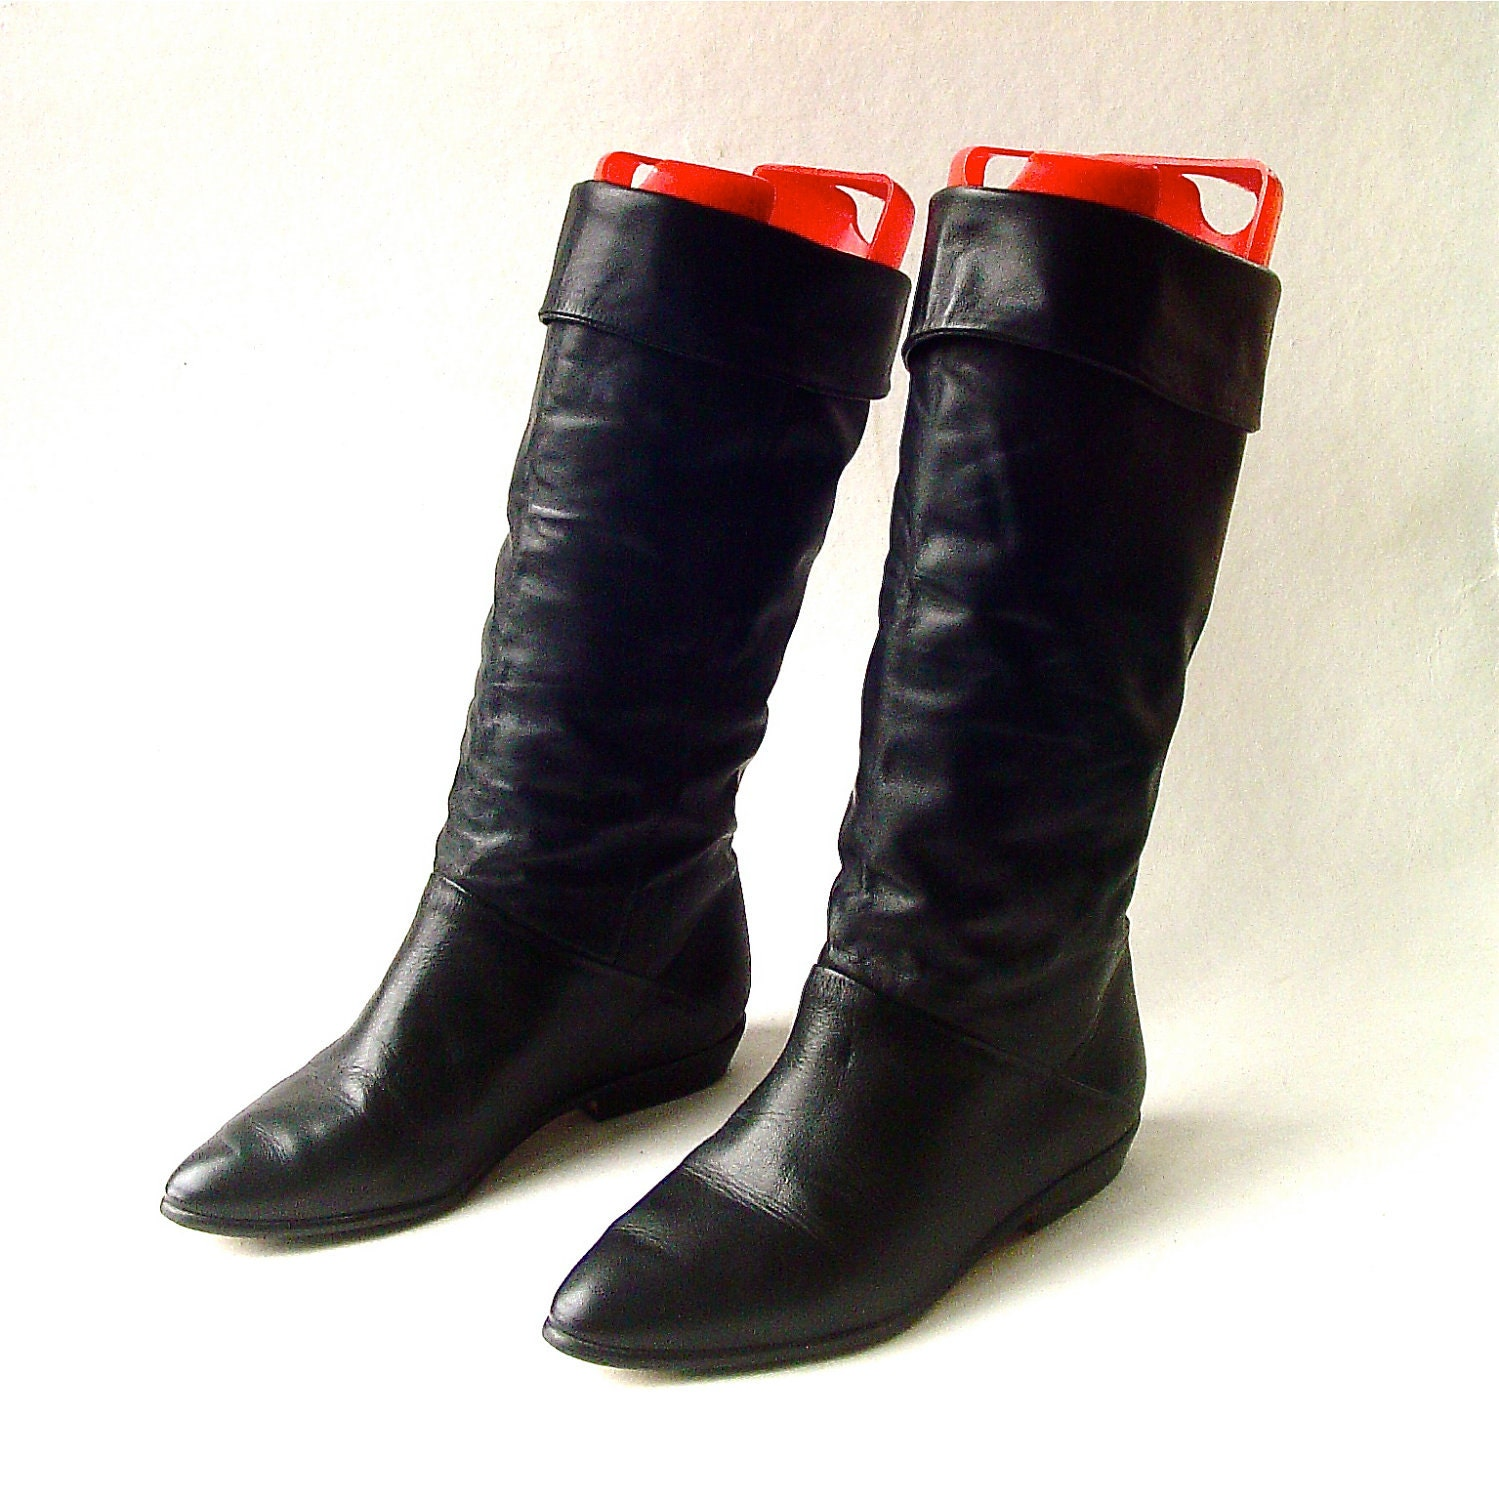 80s vintage black leather slouch boots